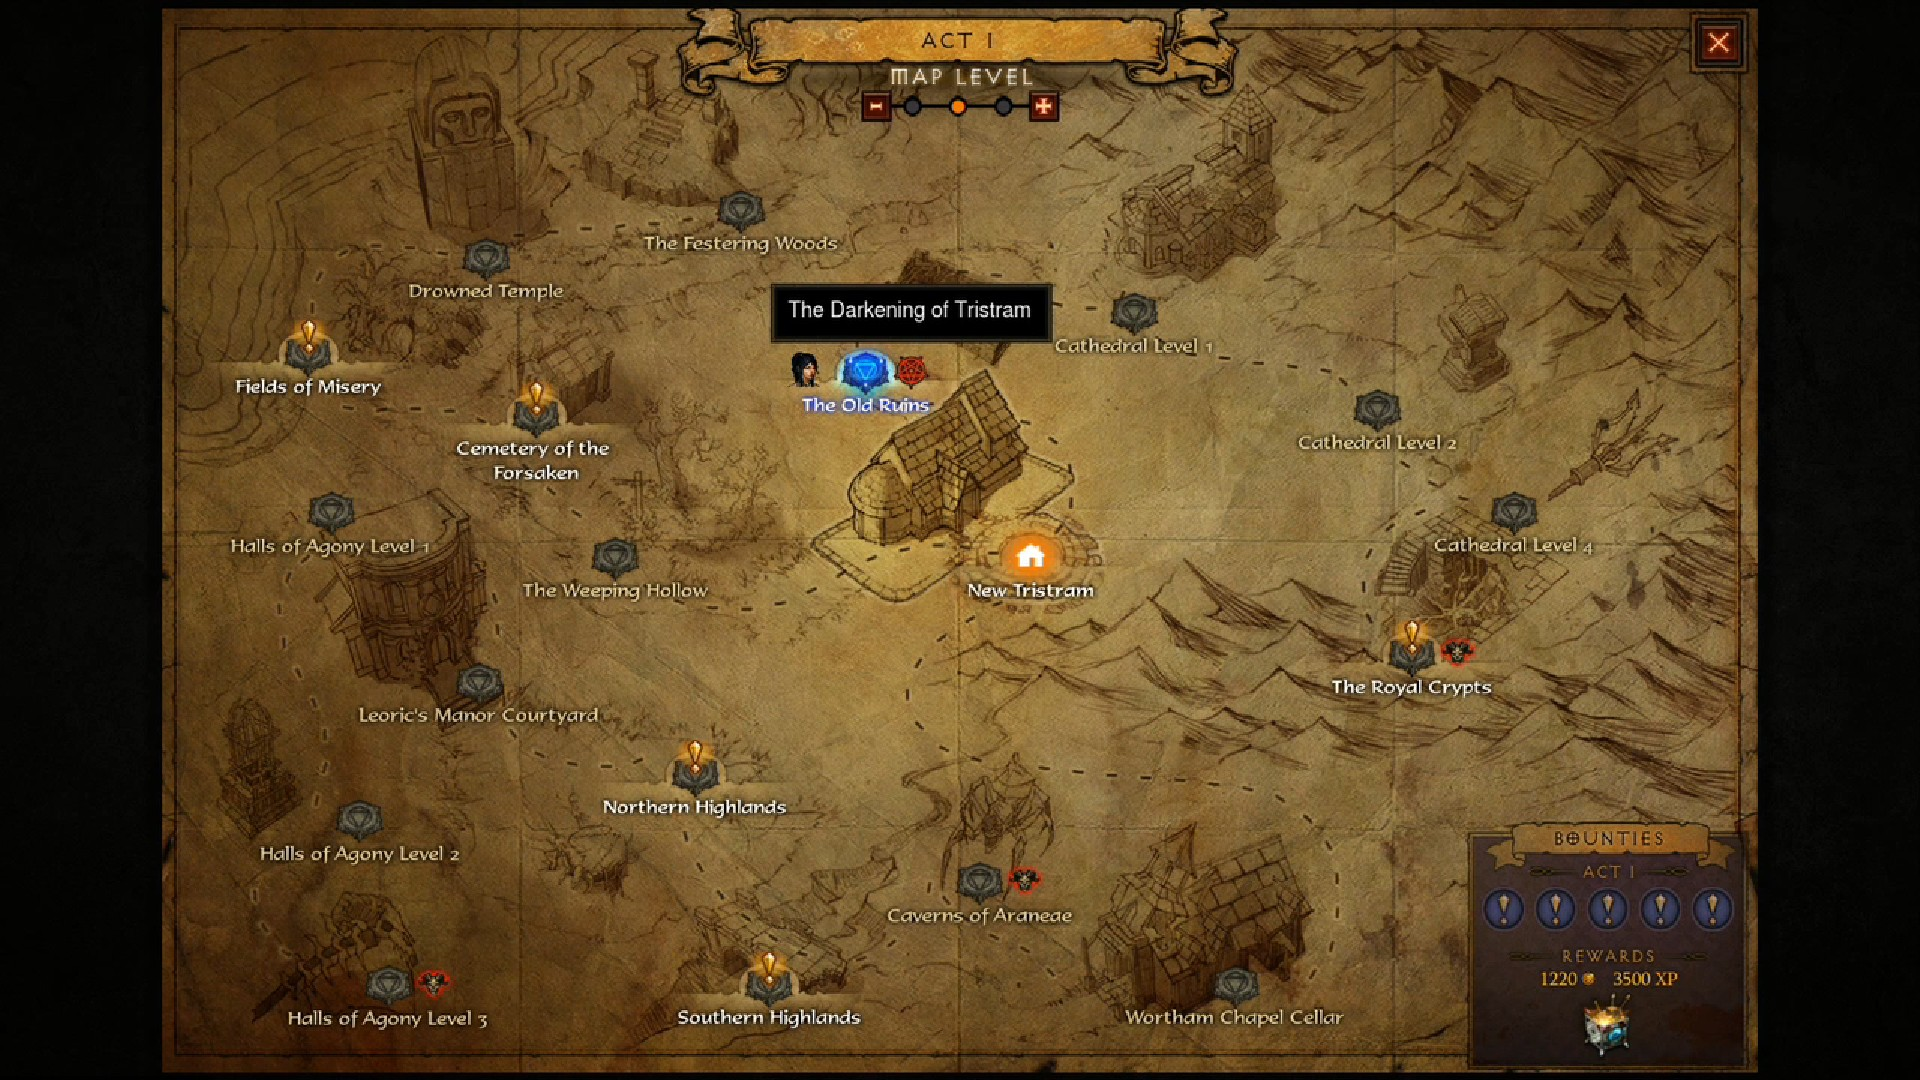 Diablo 3: Darkening of Tristram - How to Unlock the Secret Cow Level